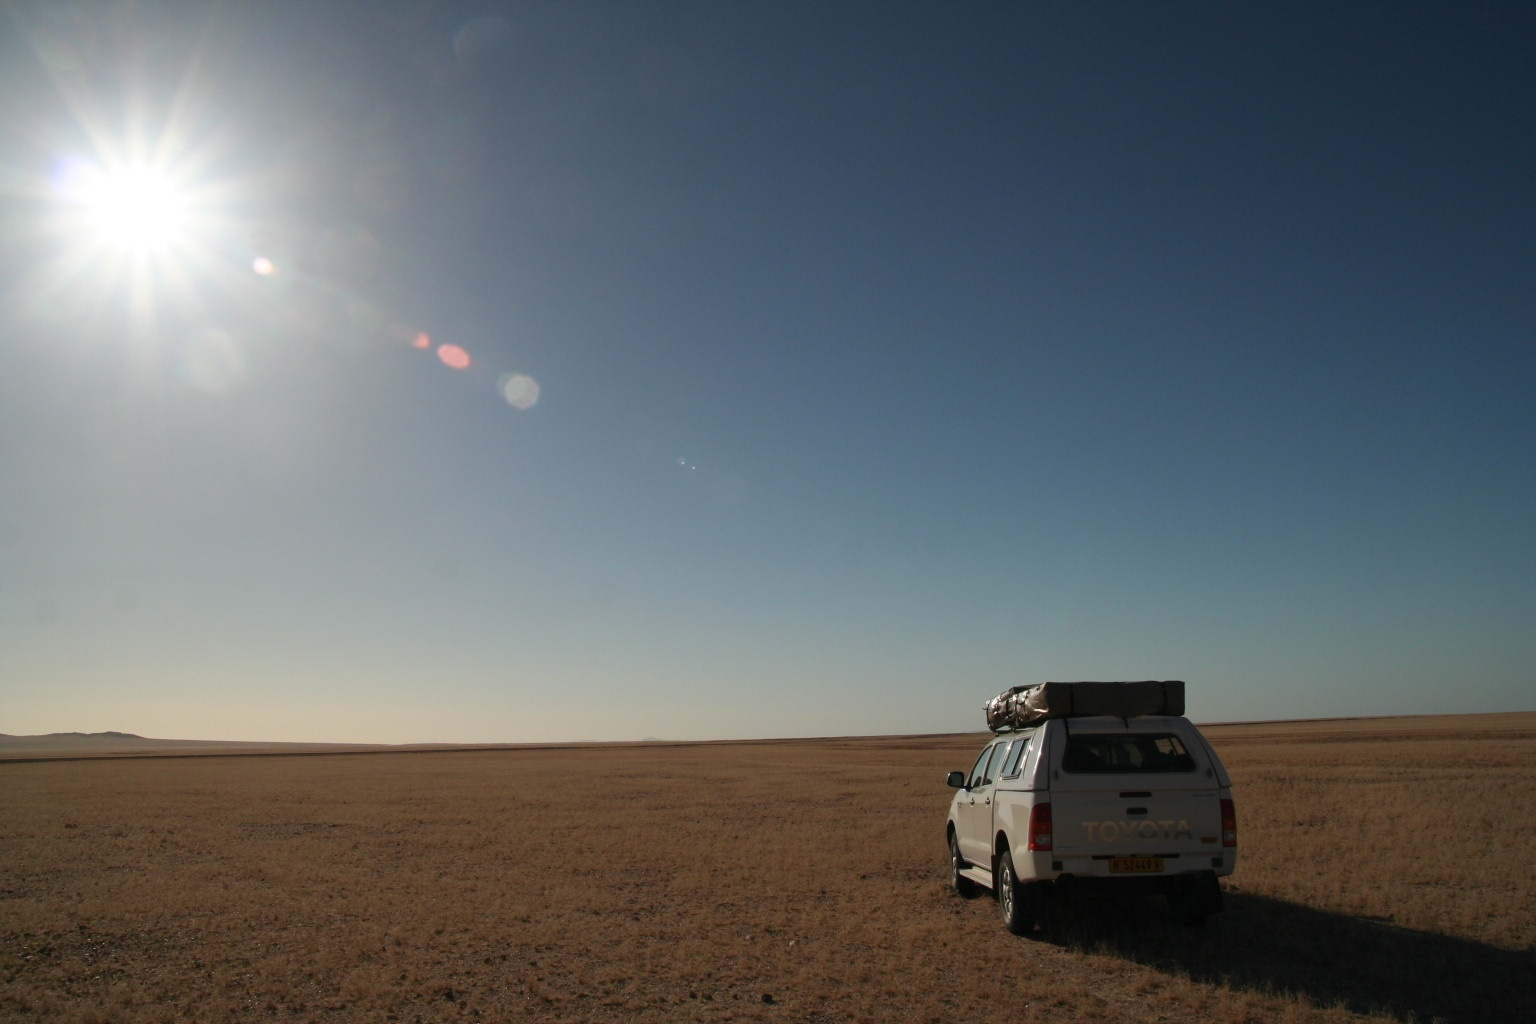 Burning Namib desert (or first off-road driving experience)